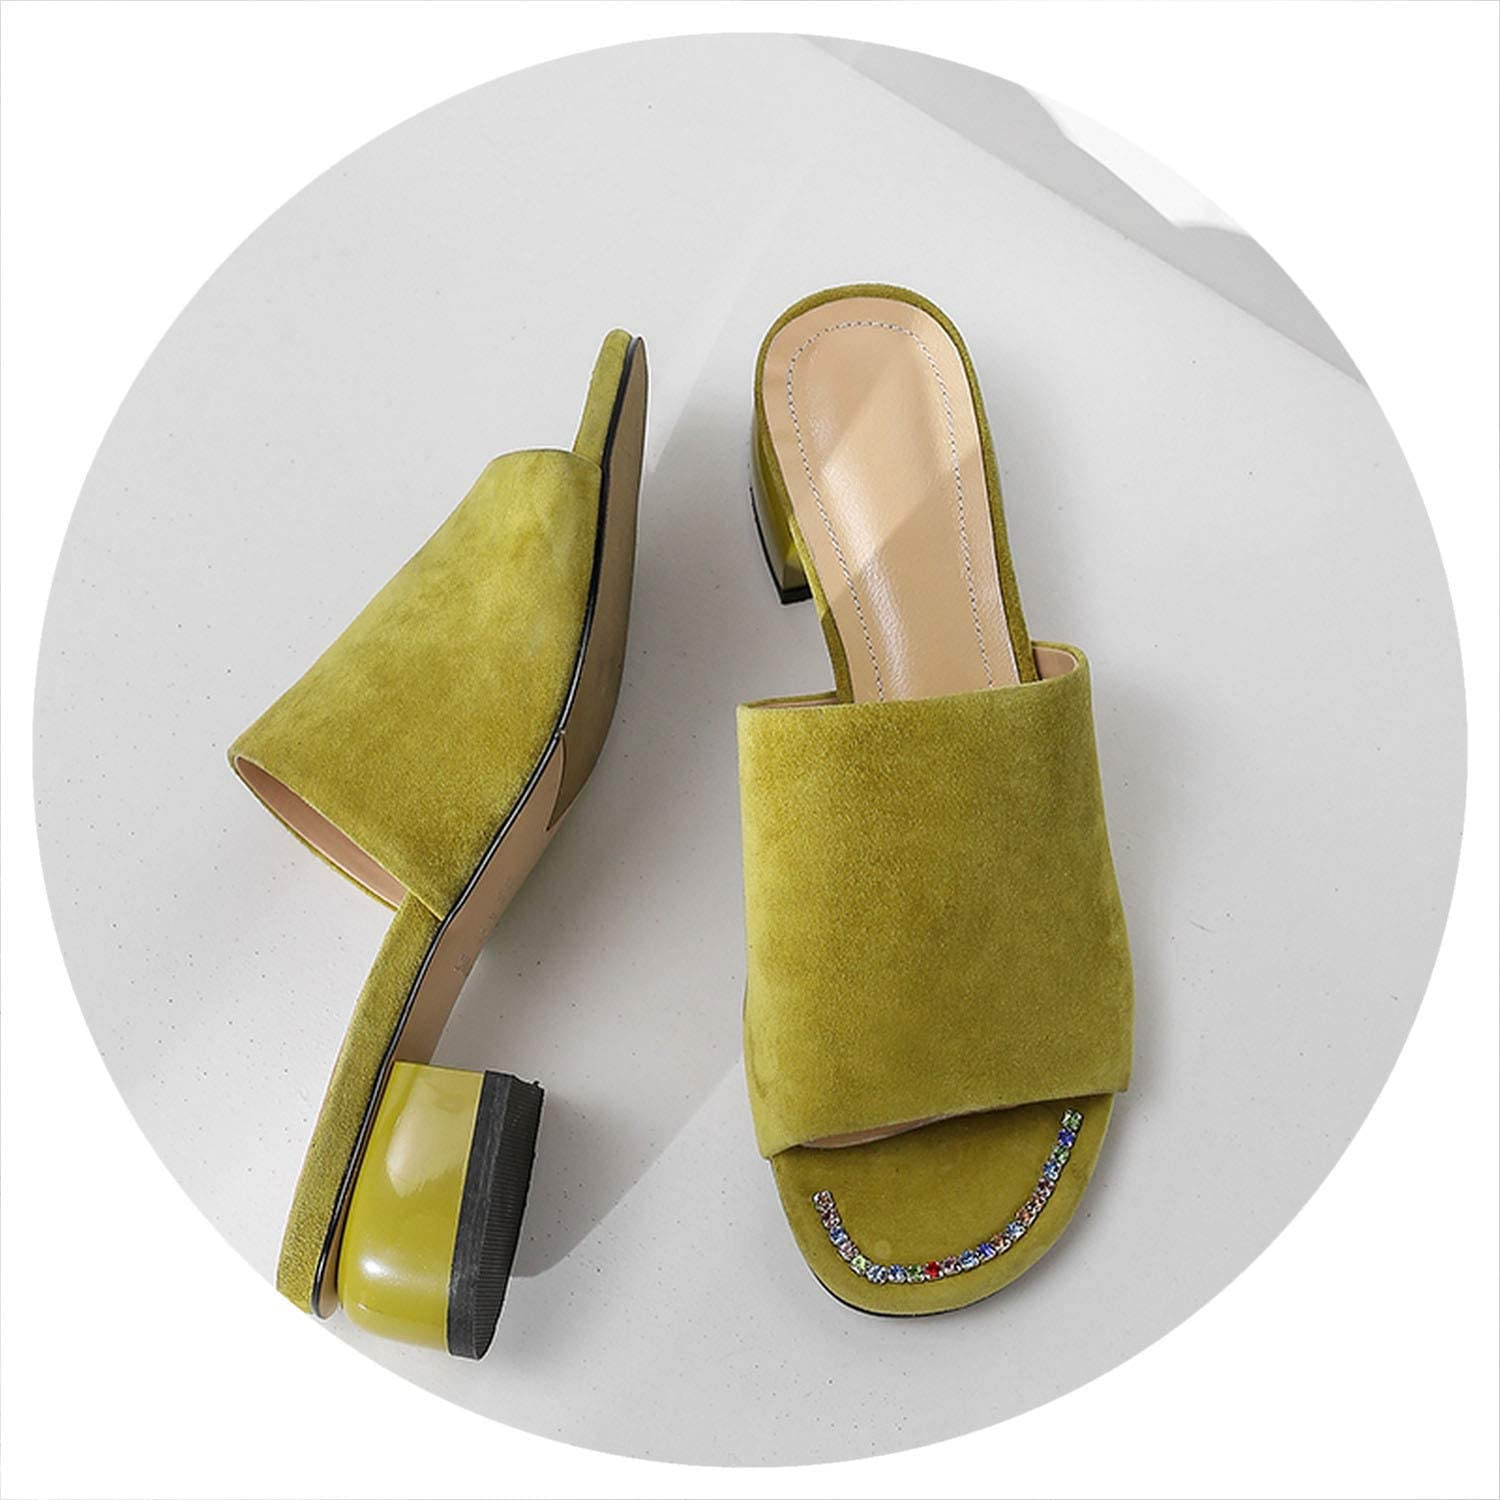 Low Heels Slippers Green Suede Leather Summer shoes Sandals Sexy Ladies Party shoes